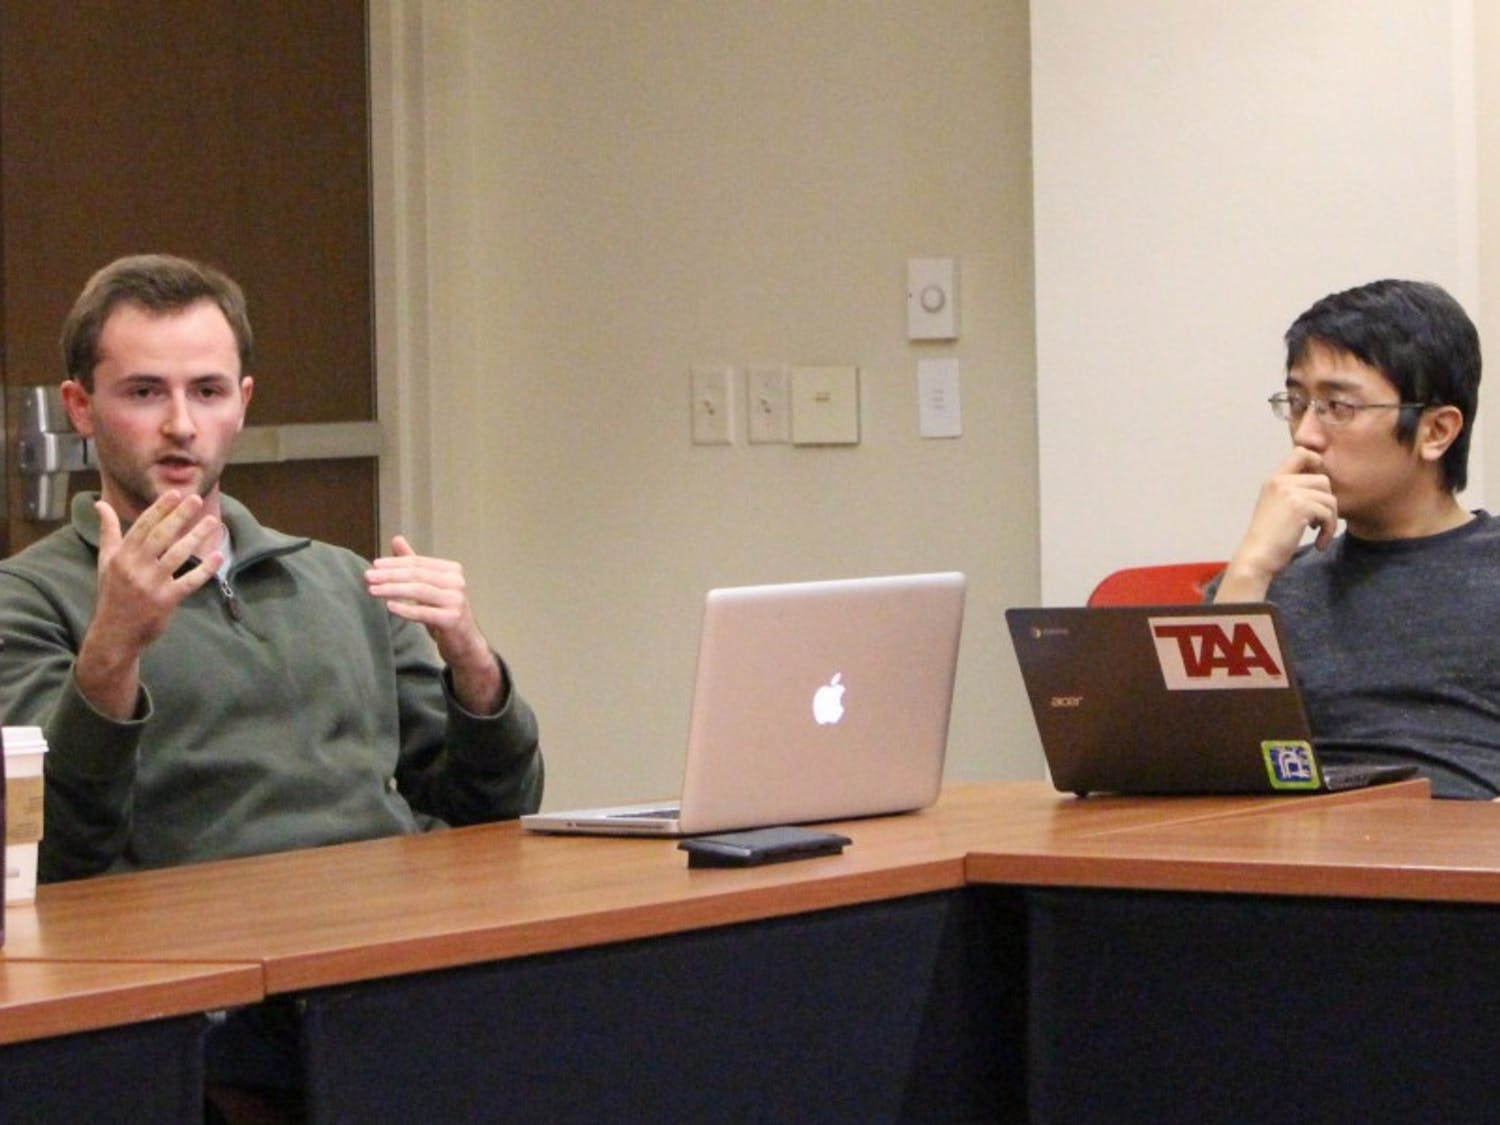 Madison Ald. Zach Wood, a UW-Madison graduate, and recent alum Hayley Young, along with current junior Noah Roberts, were elected into the local government spots they currently hold while studying at the university.